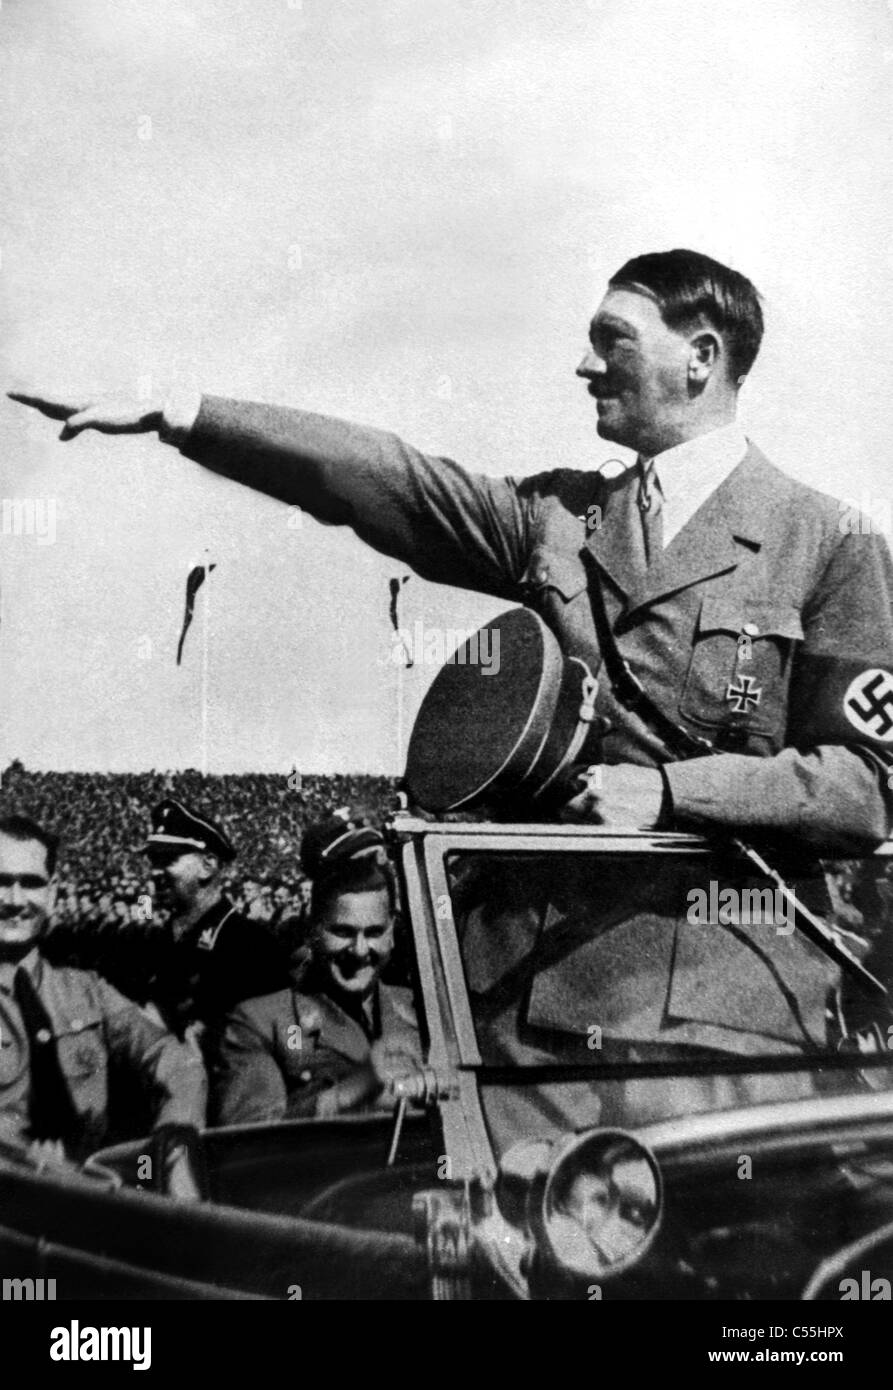 a biography of adolf hitler the fuhrer Adolf hitler is the austrian führer or leader of nazi germany and the wehrmacht, and one of the primary overarching villains of raid: world war ii tba.